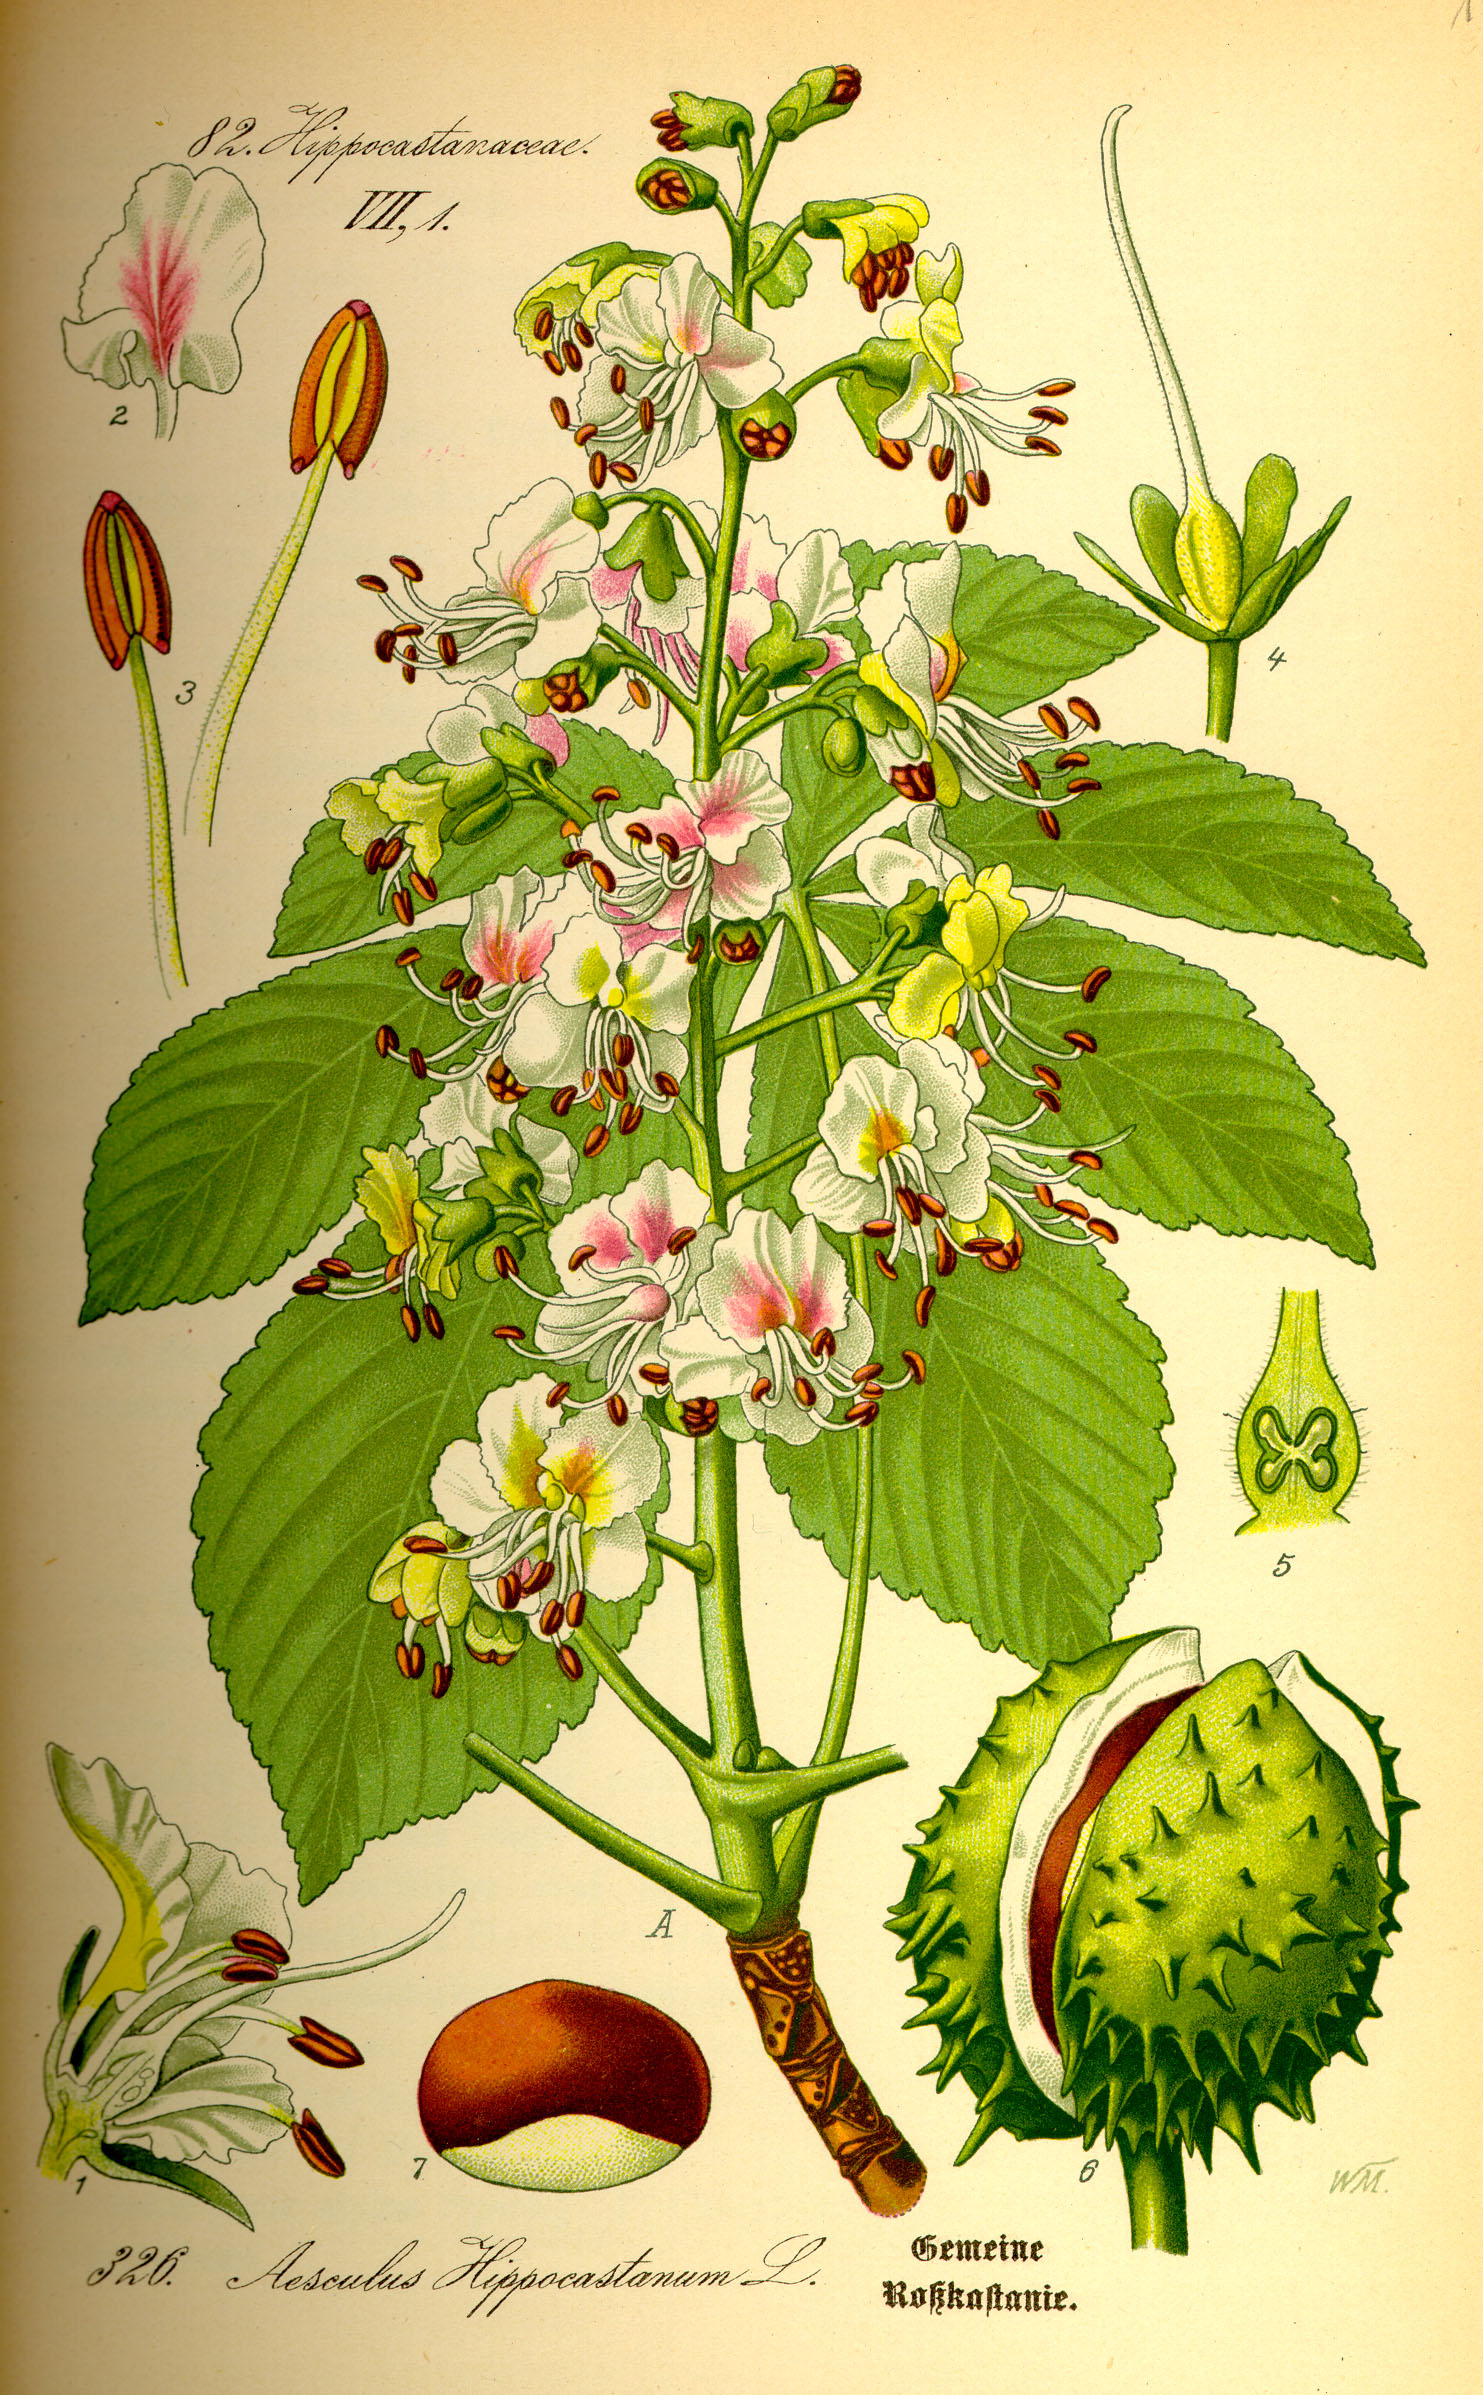 File:Illustration Aesculus hippocastanum0.jpg - Wikipedia